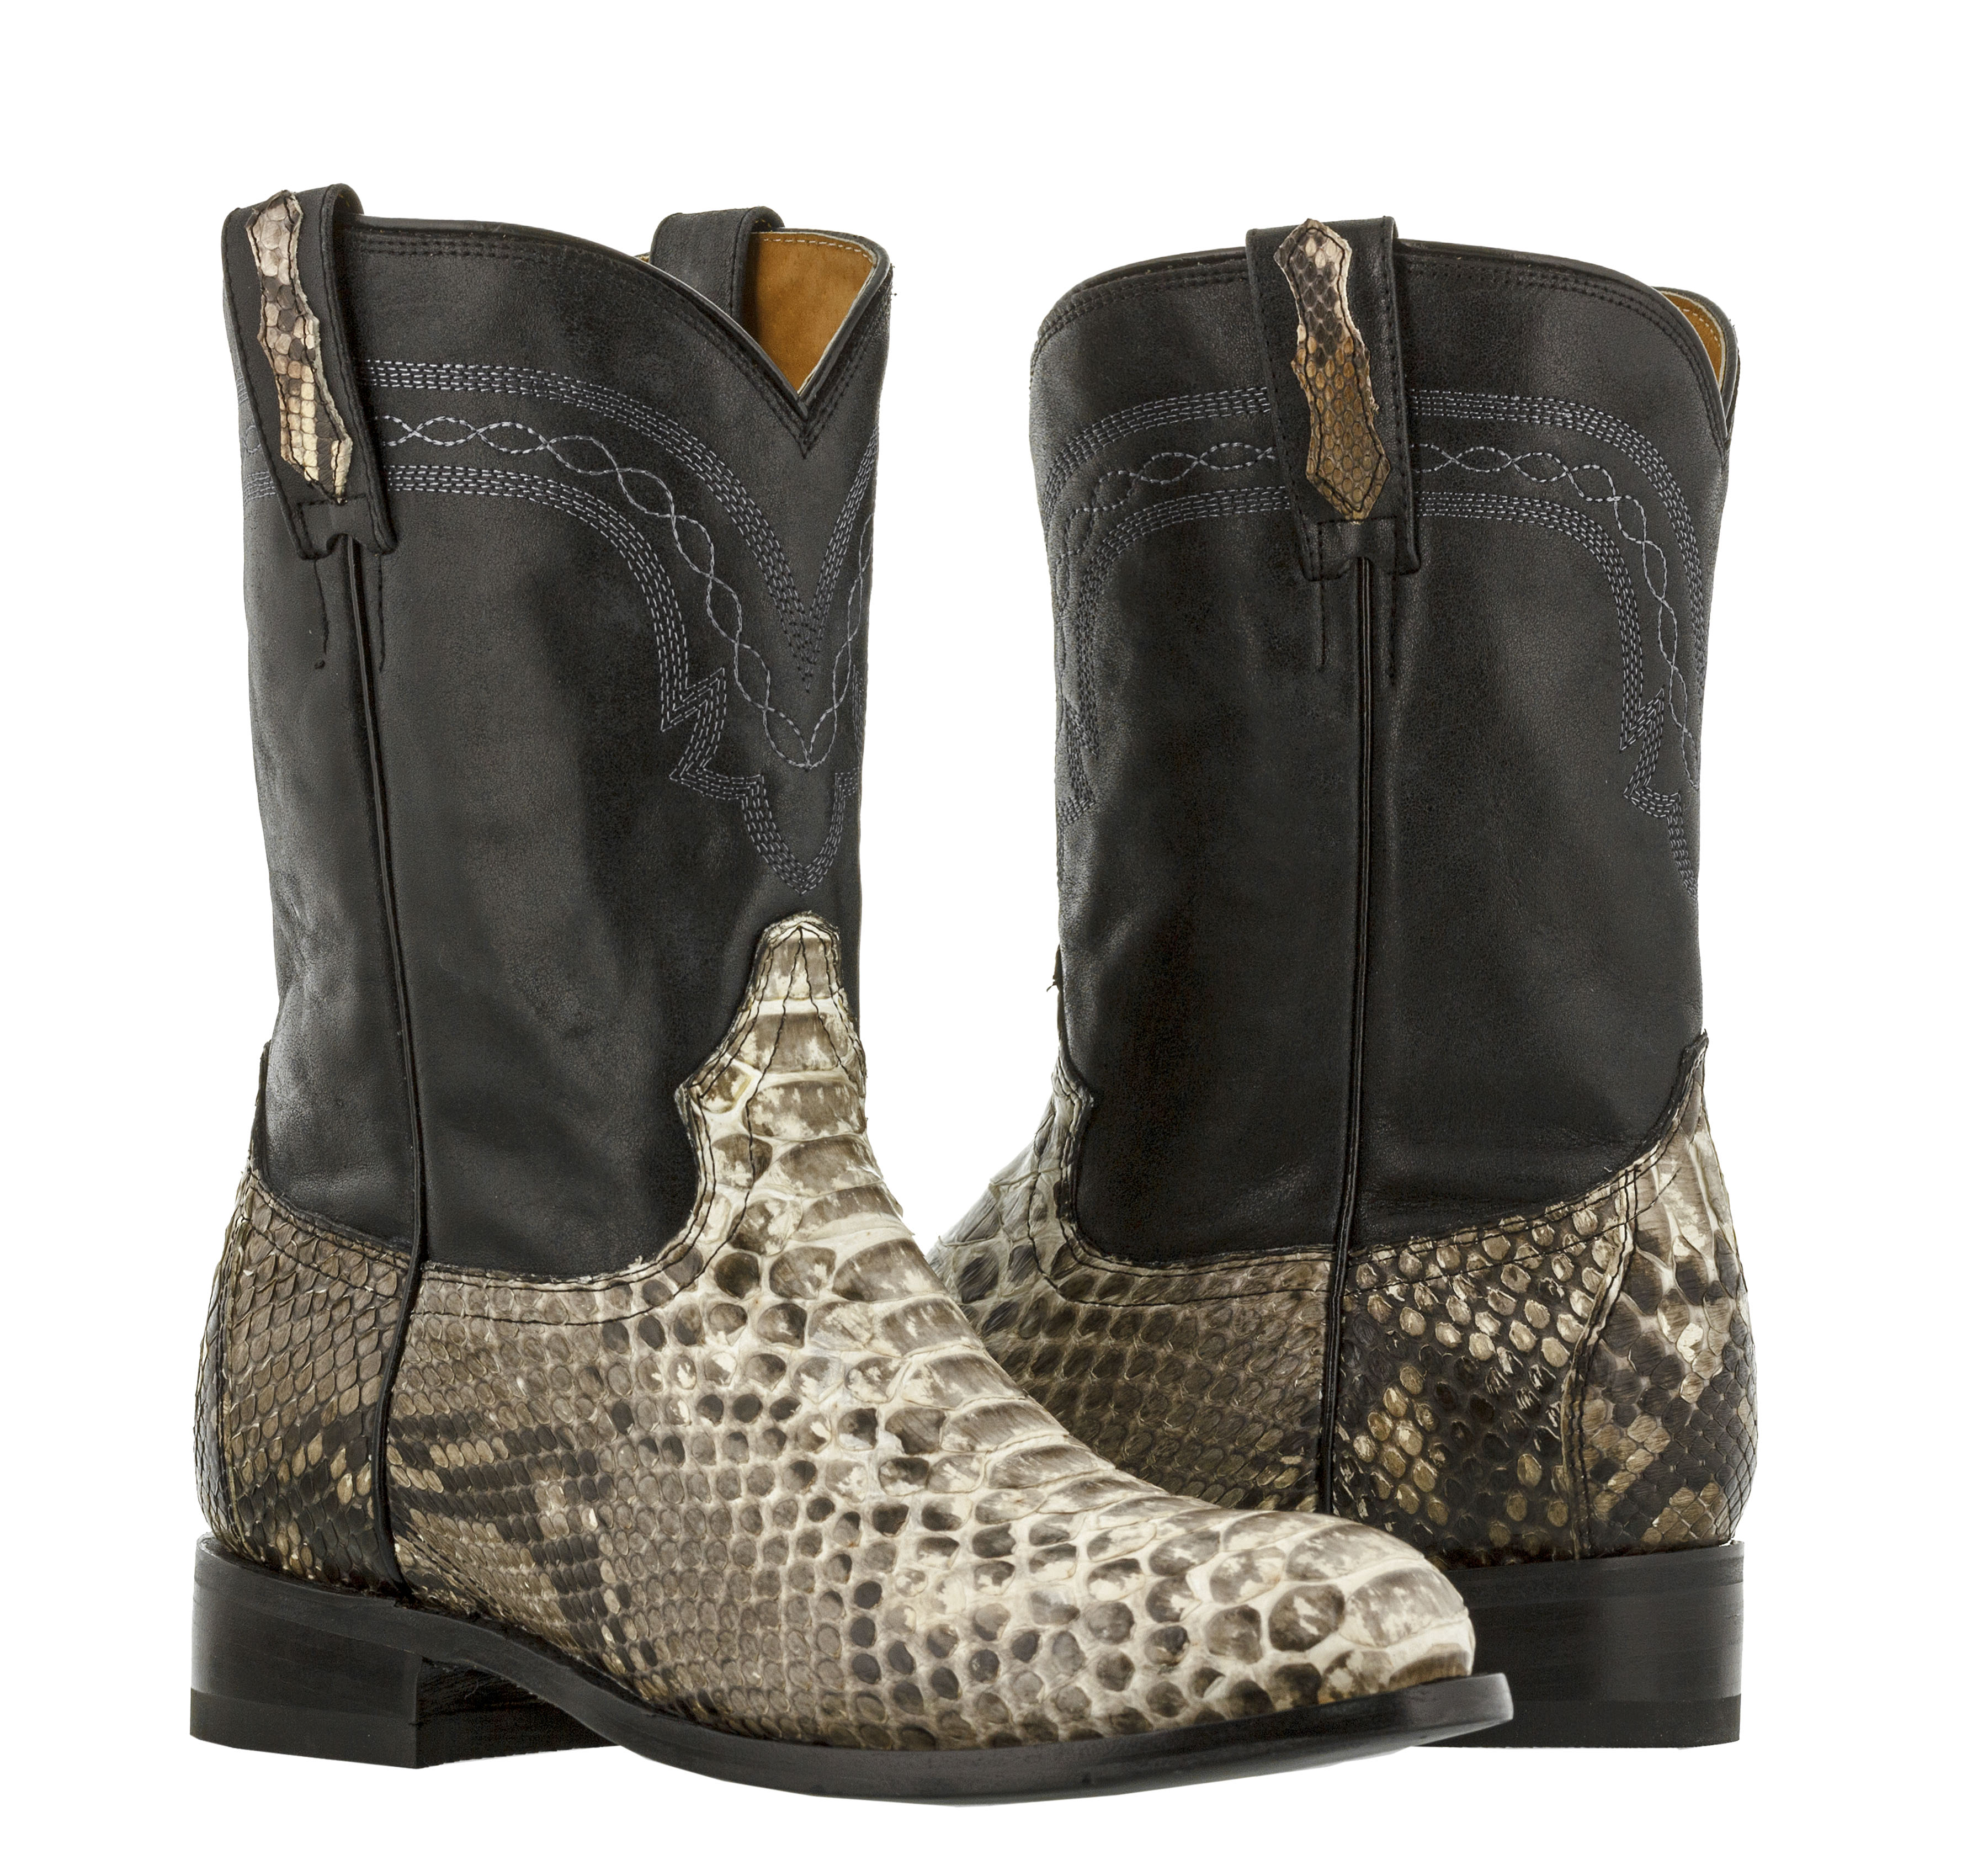 a687eaefaa8 Details about Men's Exotic Genuine Python Snakeskin Cowboy Boots Western  Natural Roper Toe